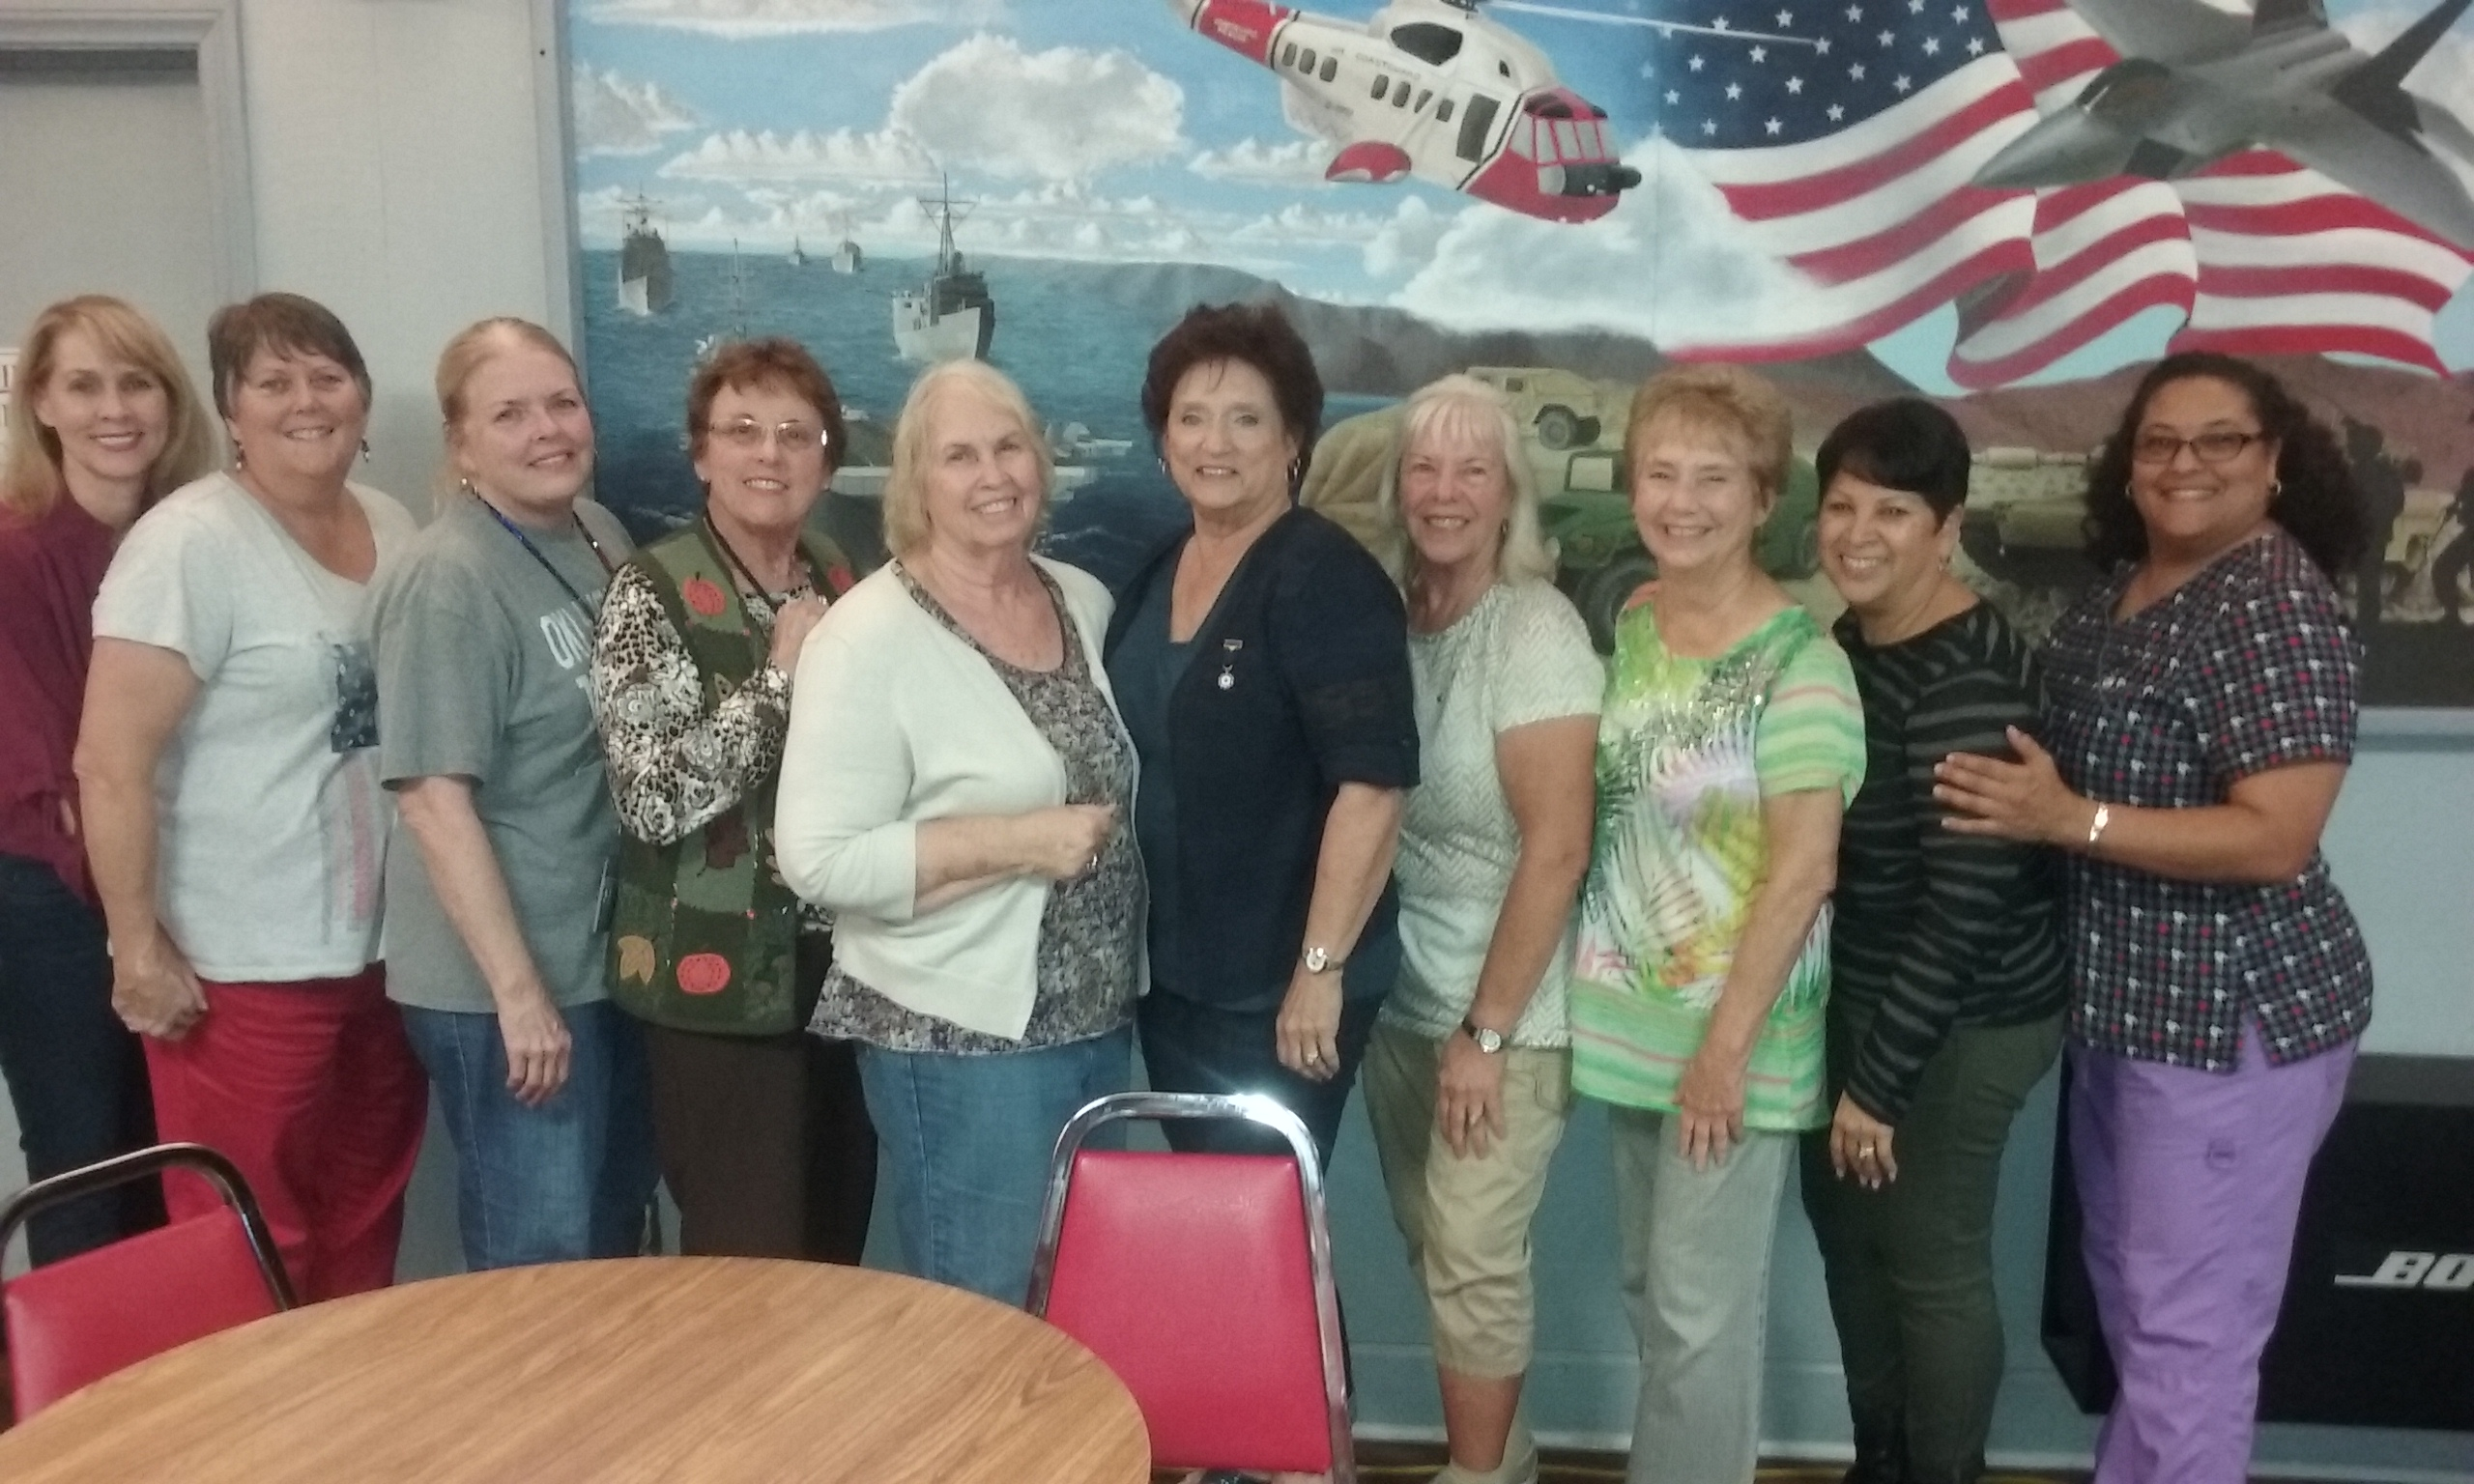 The ladies of post 149 auxiliary